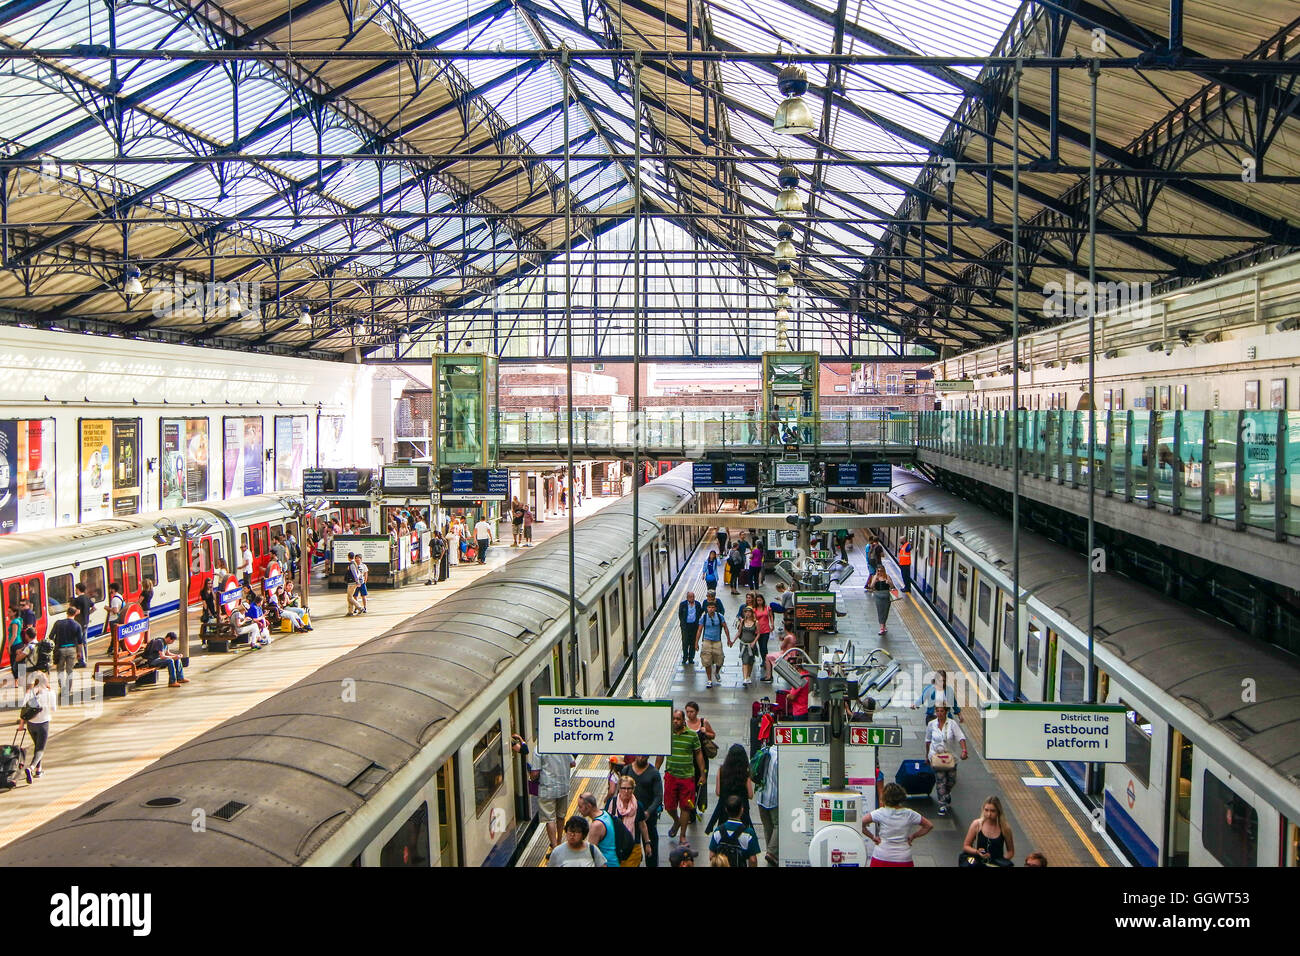 Euston Railway Station, opened July 1837, was the first intercity railway station in London - Stock Image